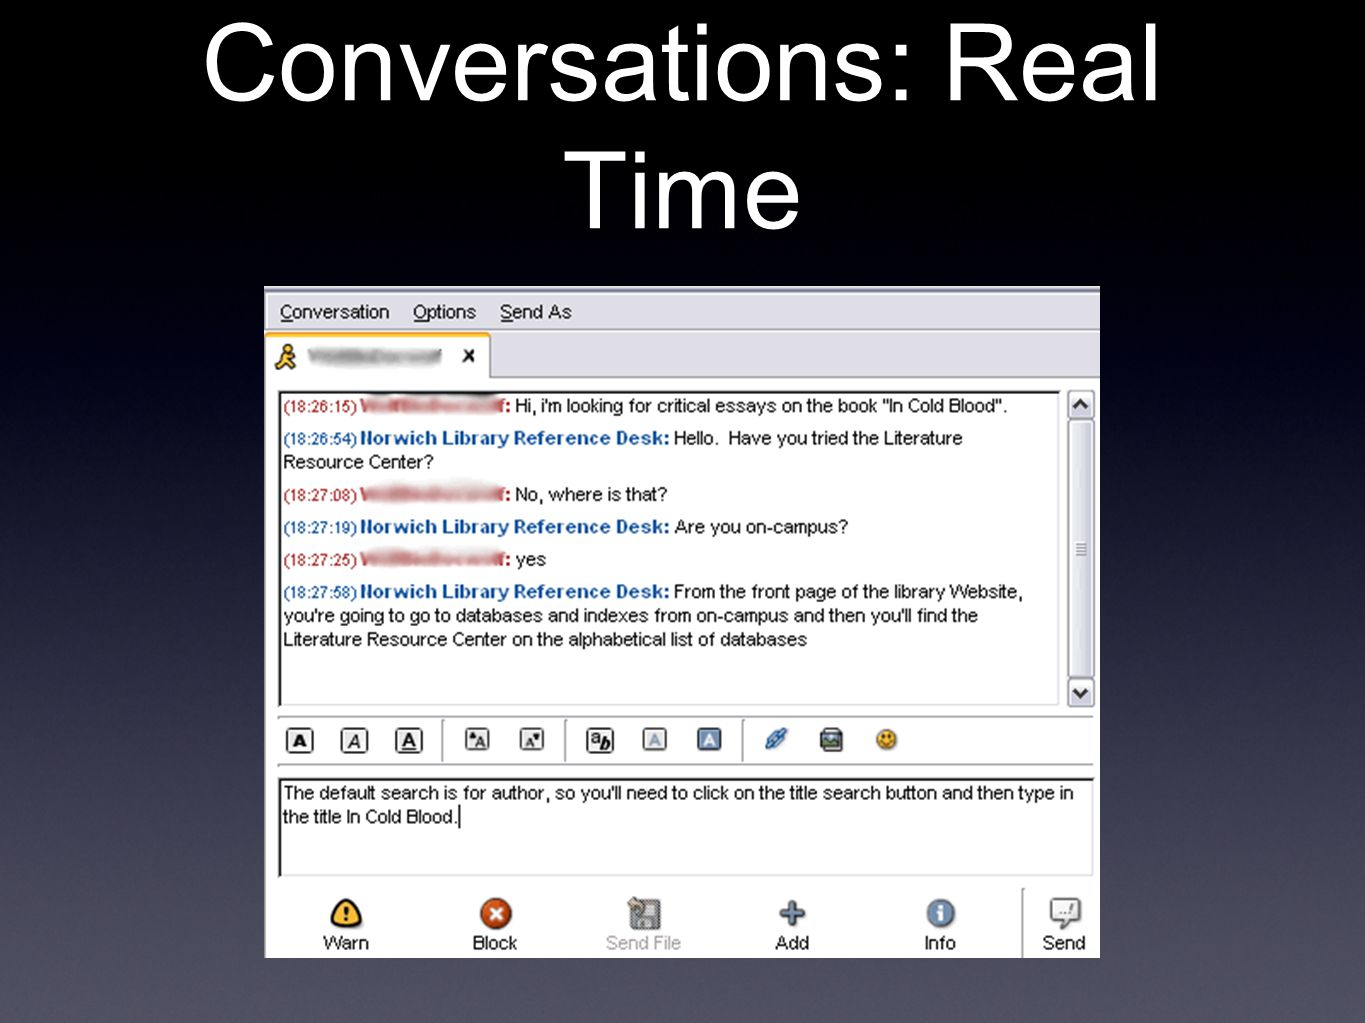 Conversations: Real Time